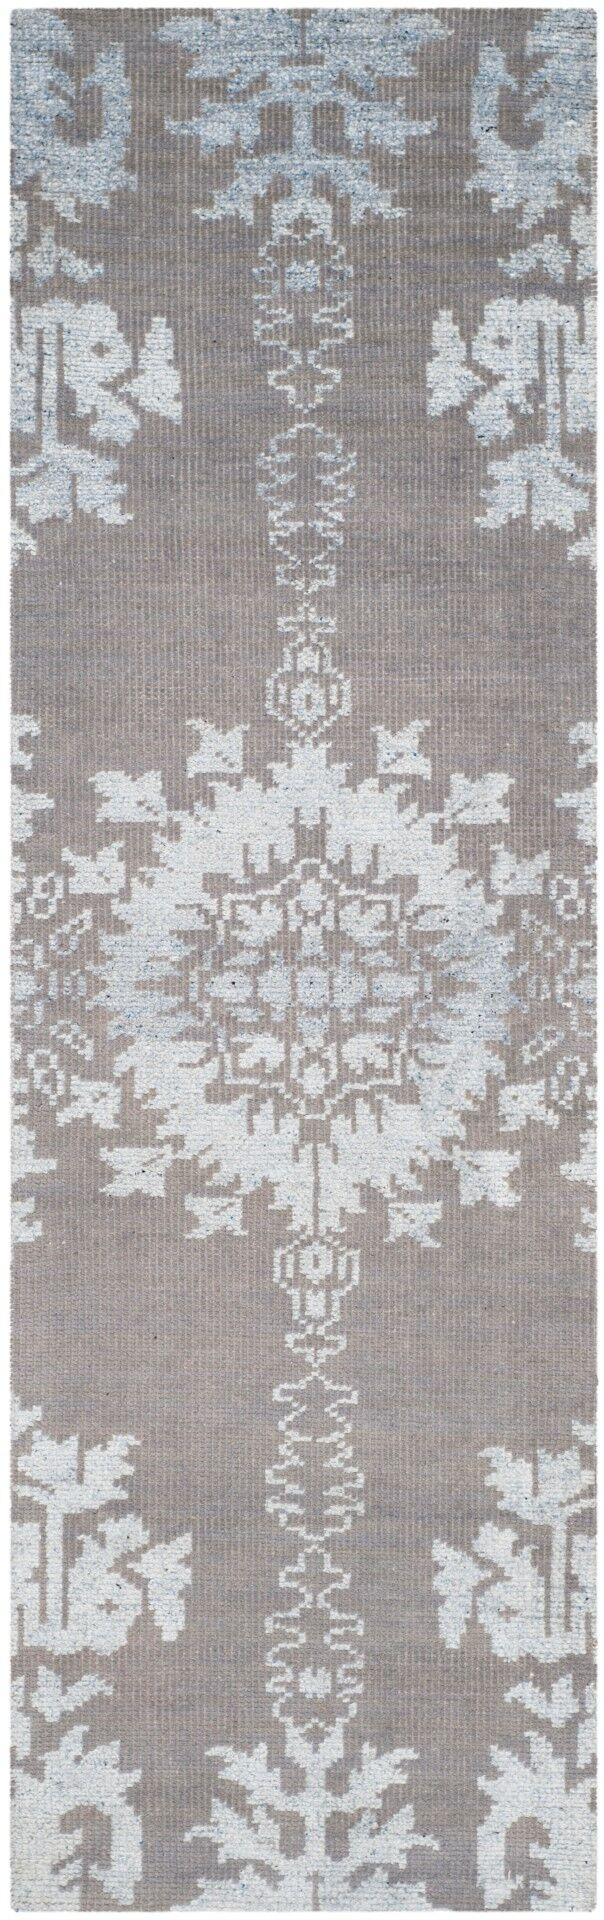 Bottesford Hand-Knotted Gray Area Rug Rug Size: Runner 2'6